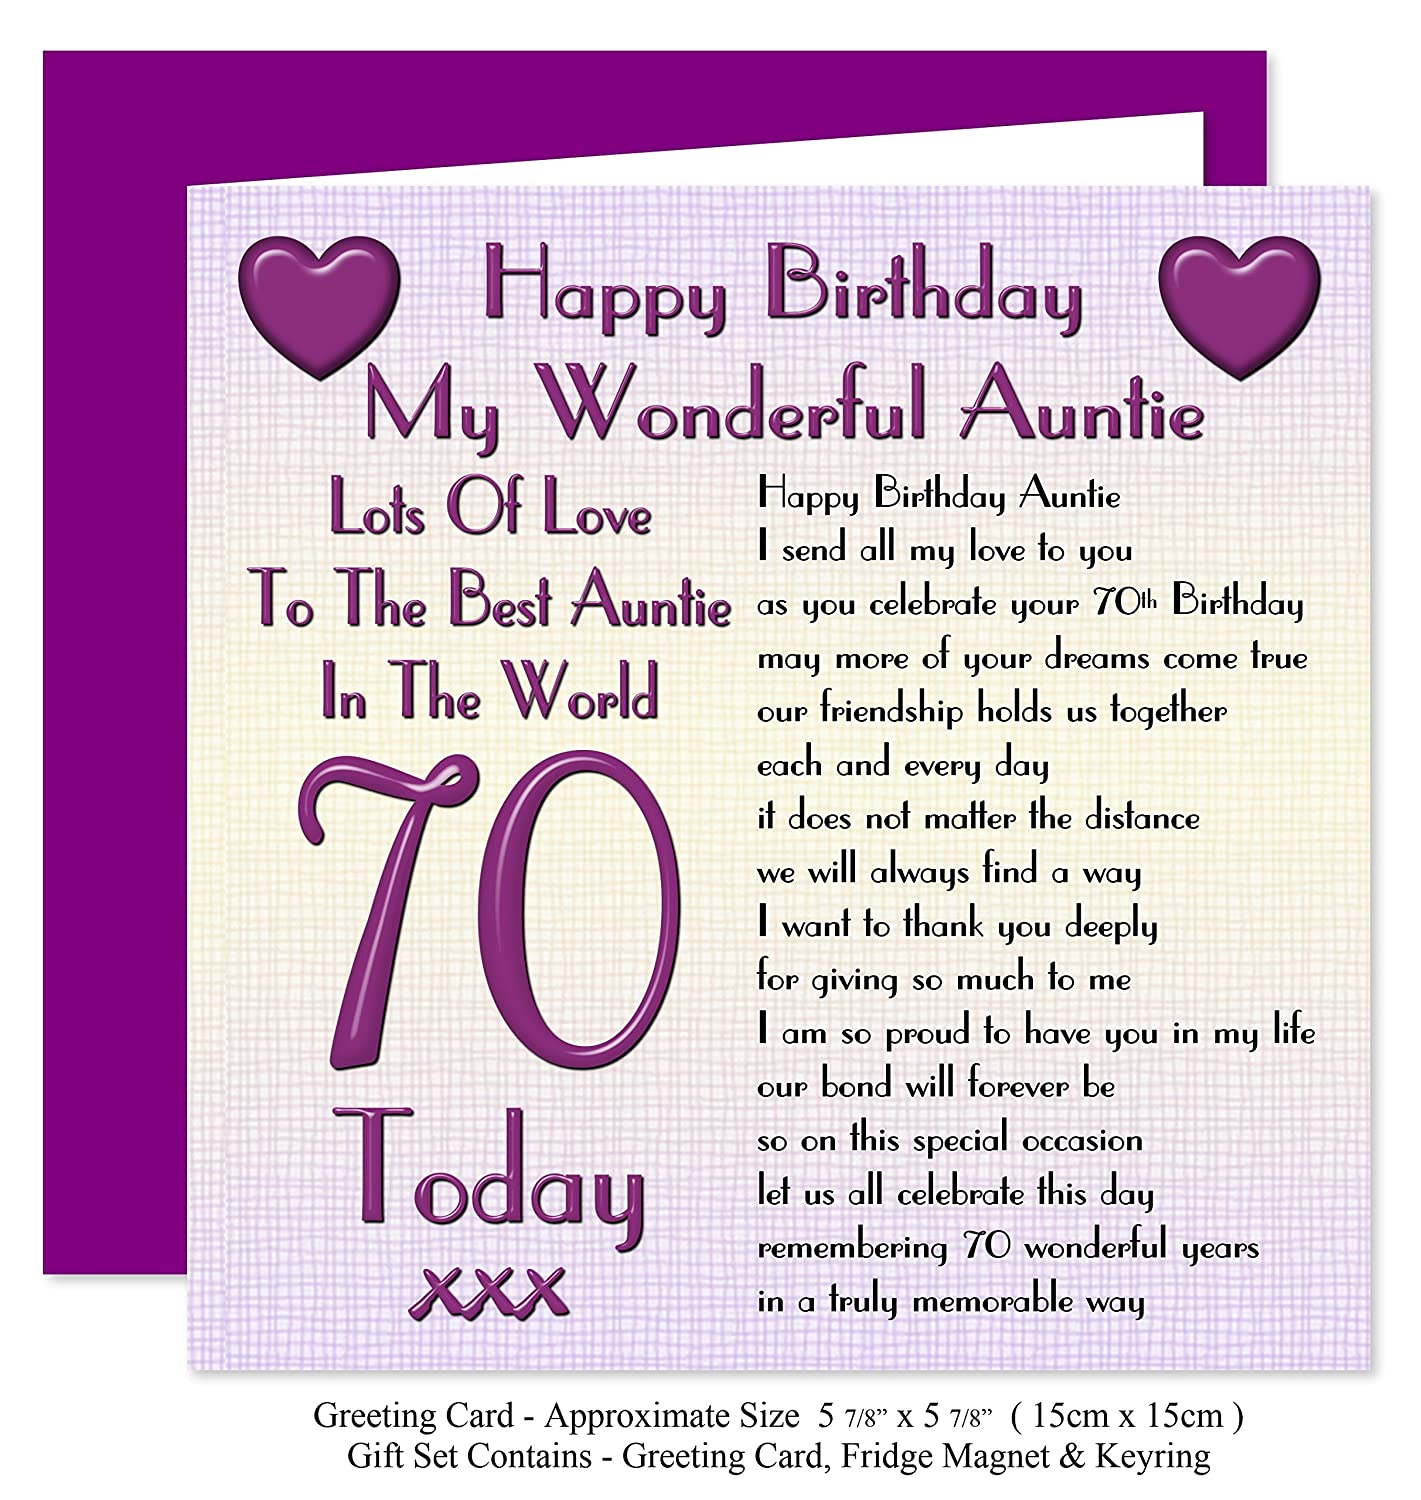 Auntie 70th happy birthday gift set card keyring fridge auntie 70th happy birthday gift set card keyring fridge magnet present lots of love to the best auntie in the world 70 today amazon office kristyandbryce Choice Image